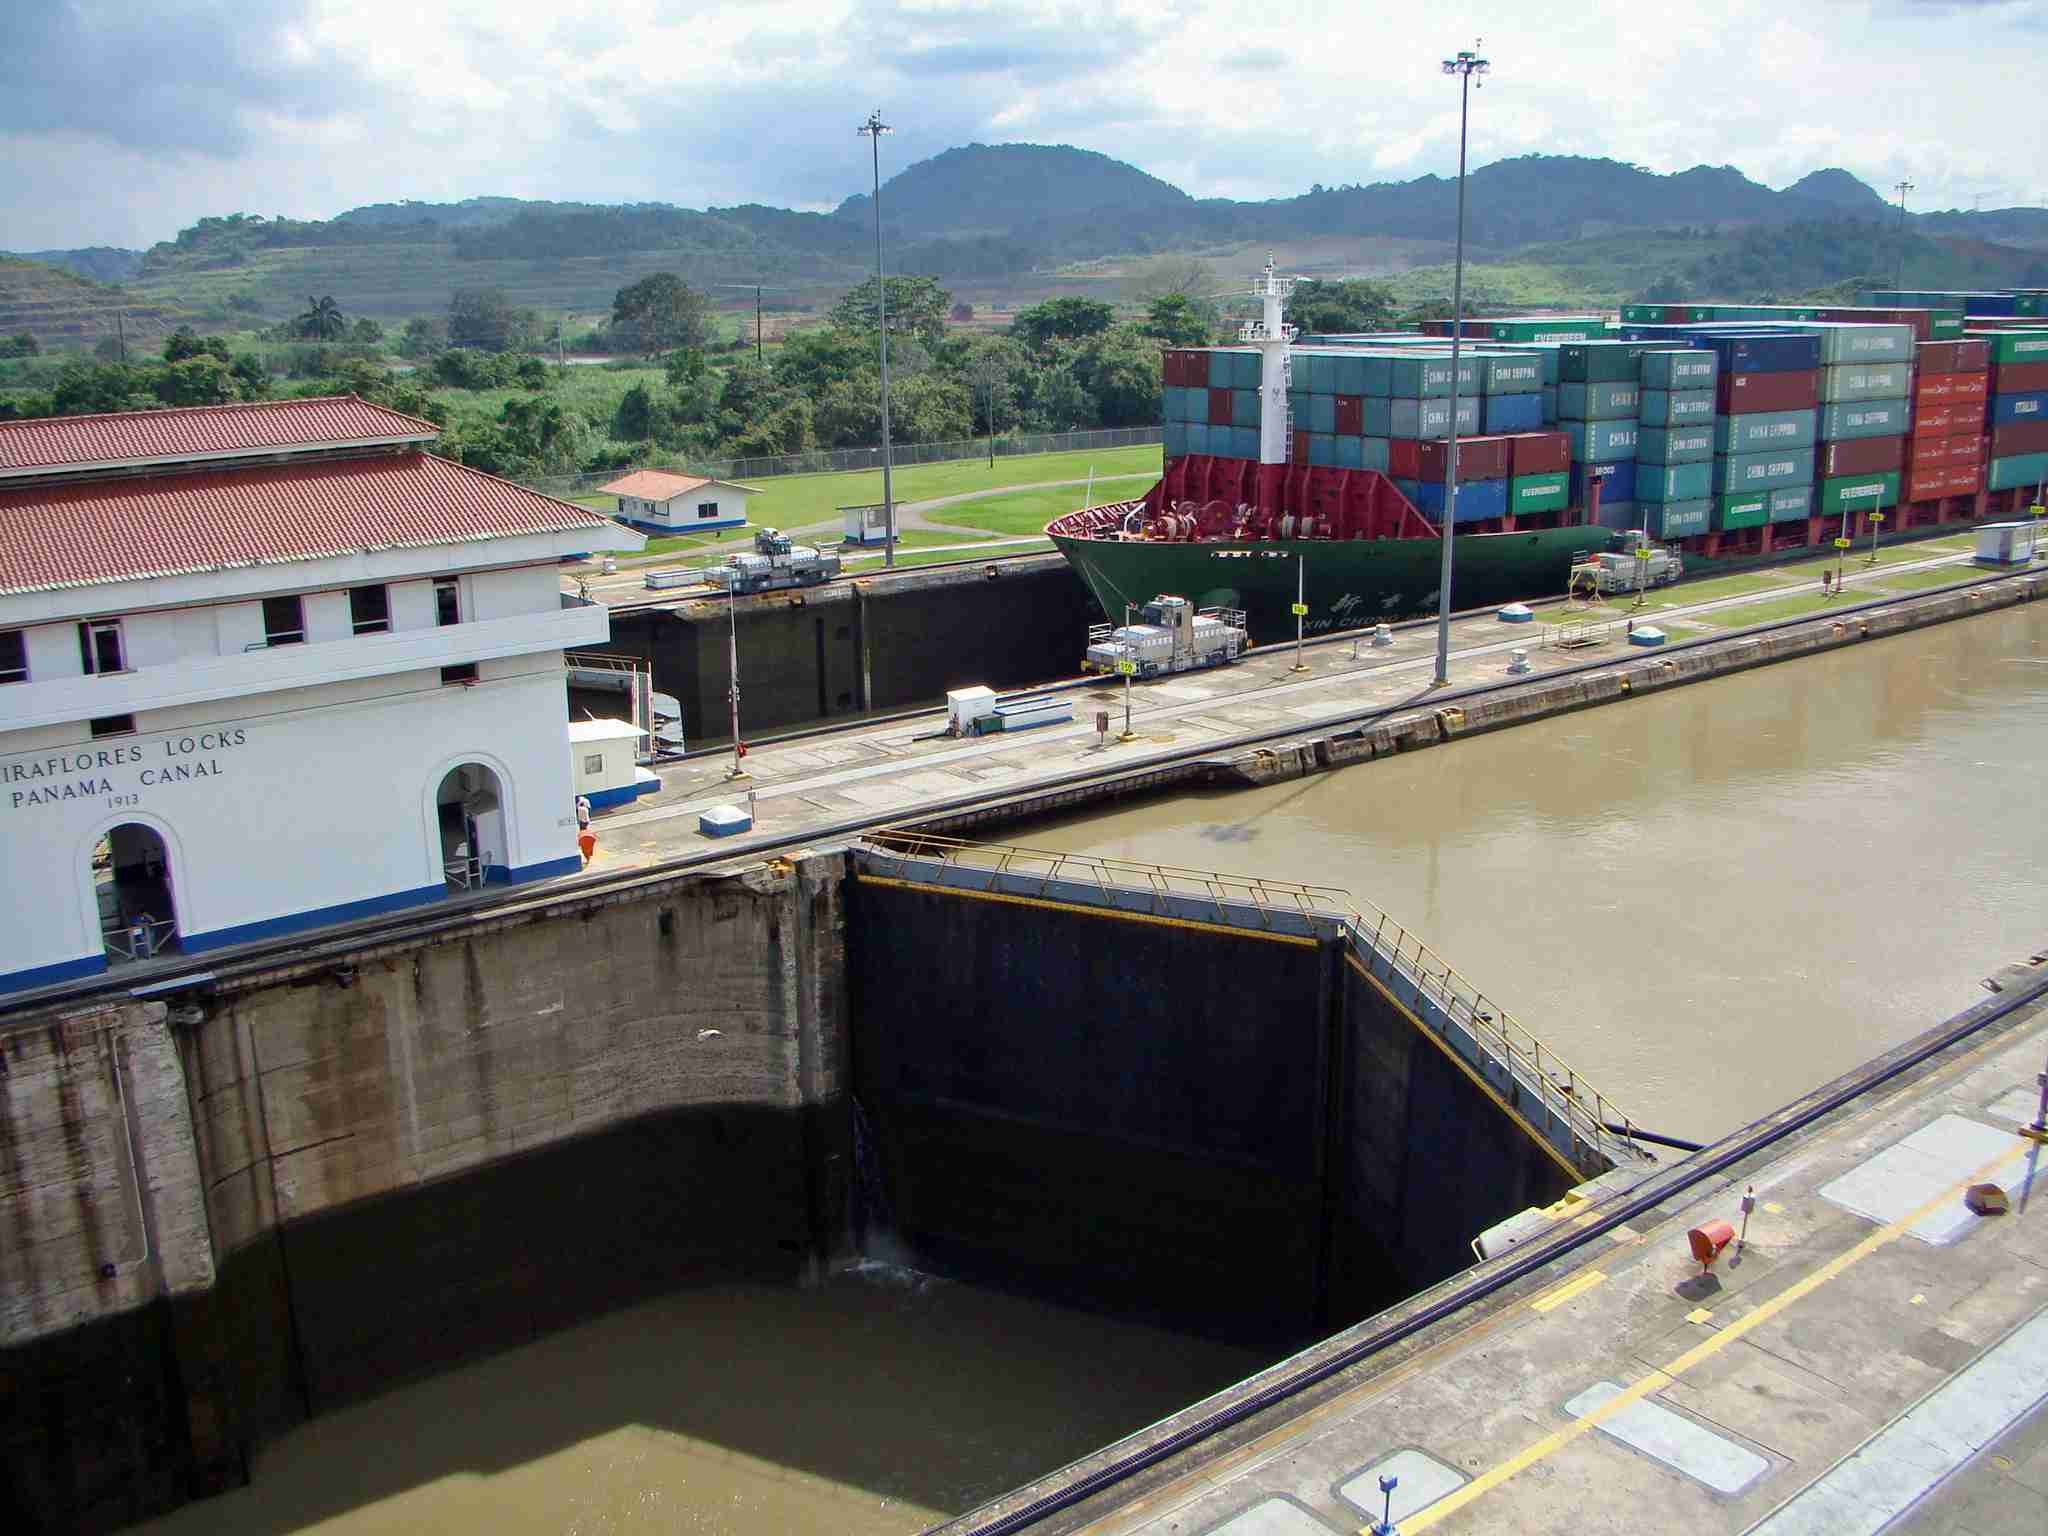 The Panama Canal was among the greatest engineering achievements of its time.